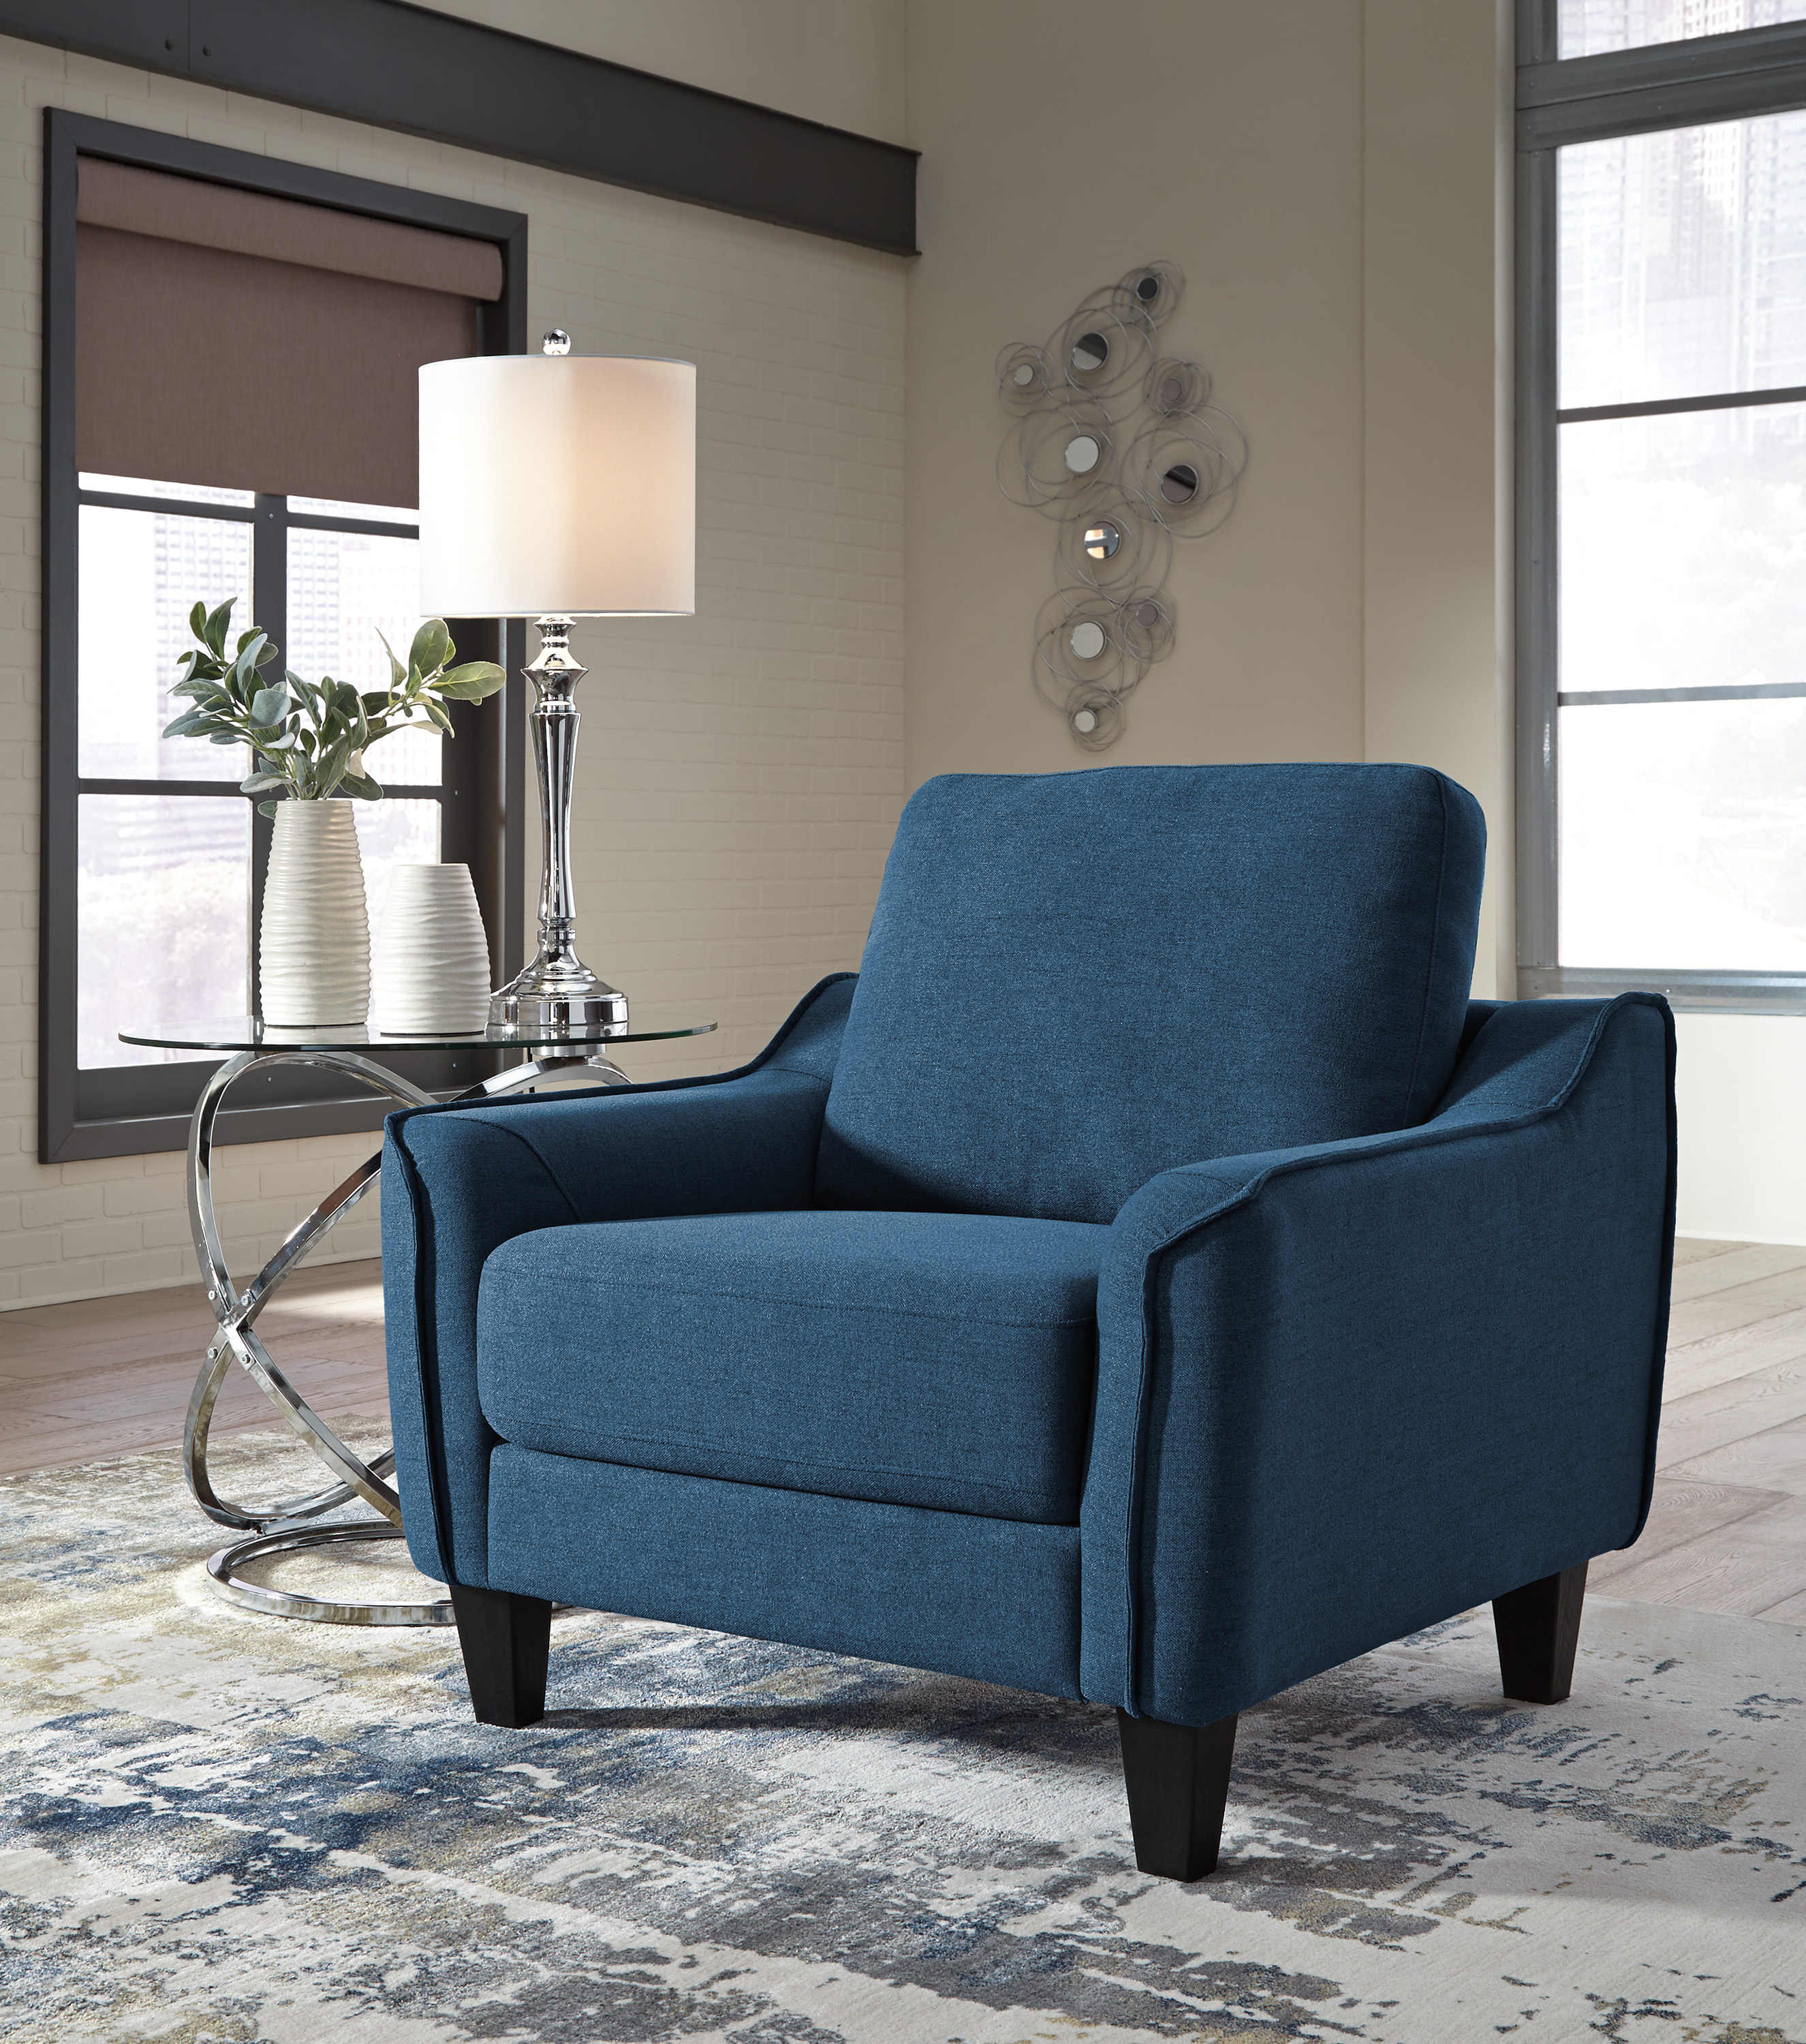 Cheap Furniture With Delivery: Jarreau Blue Sofa Chaise Sleeper FREE DELIVERY!